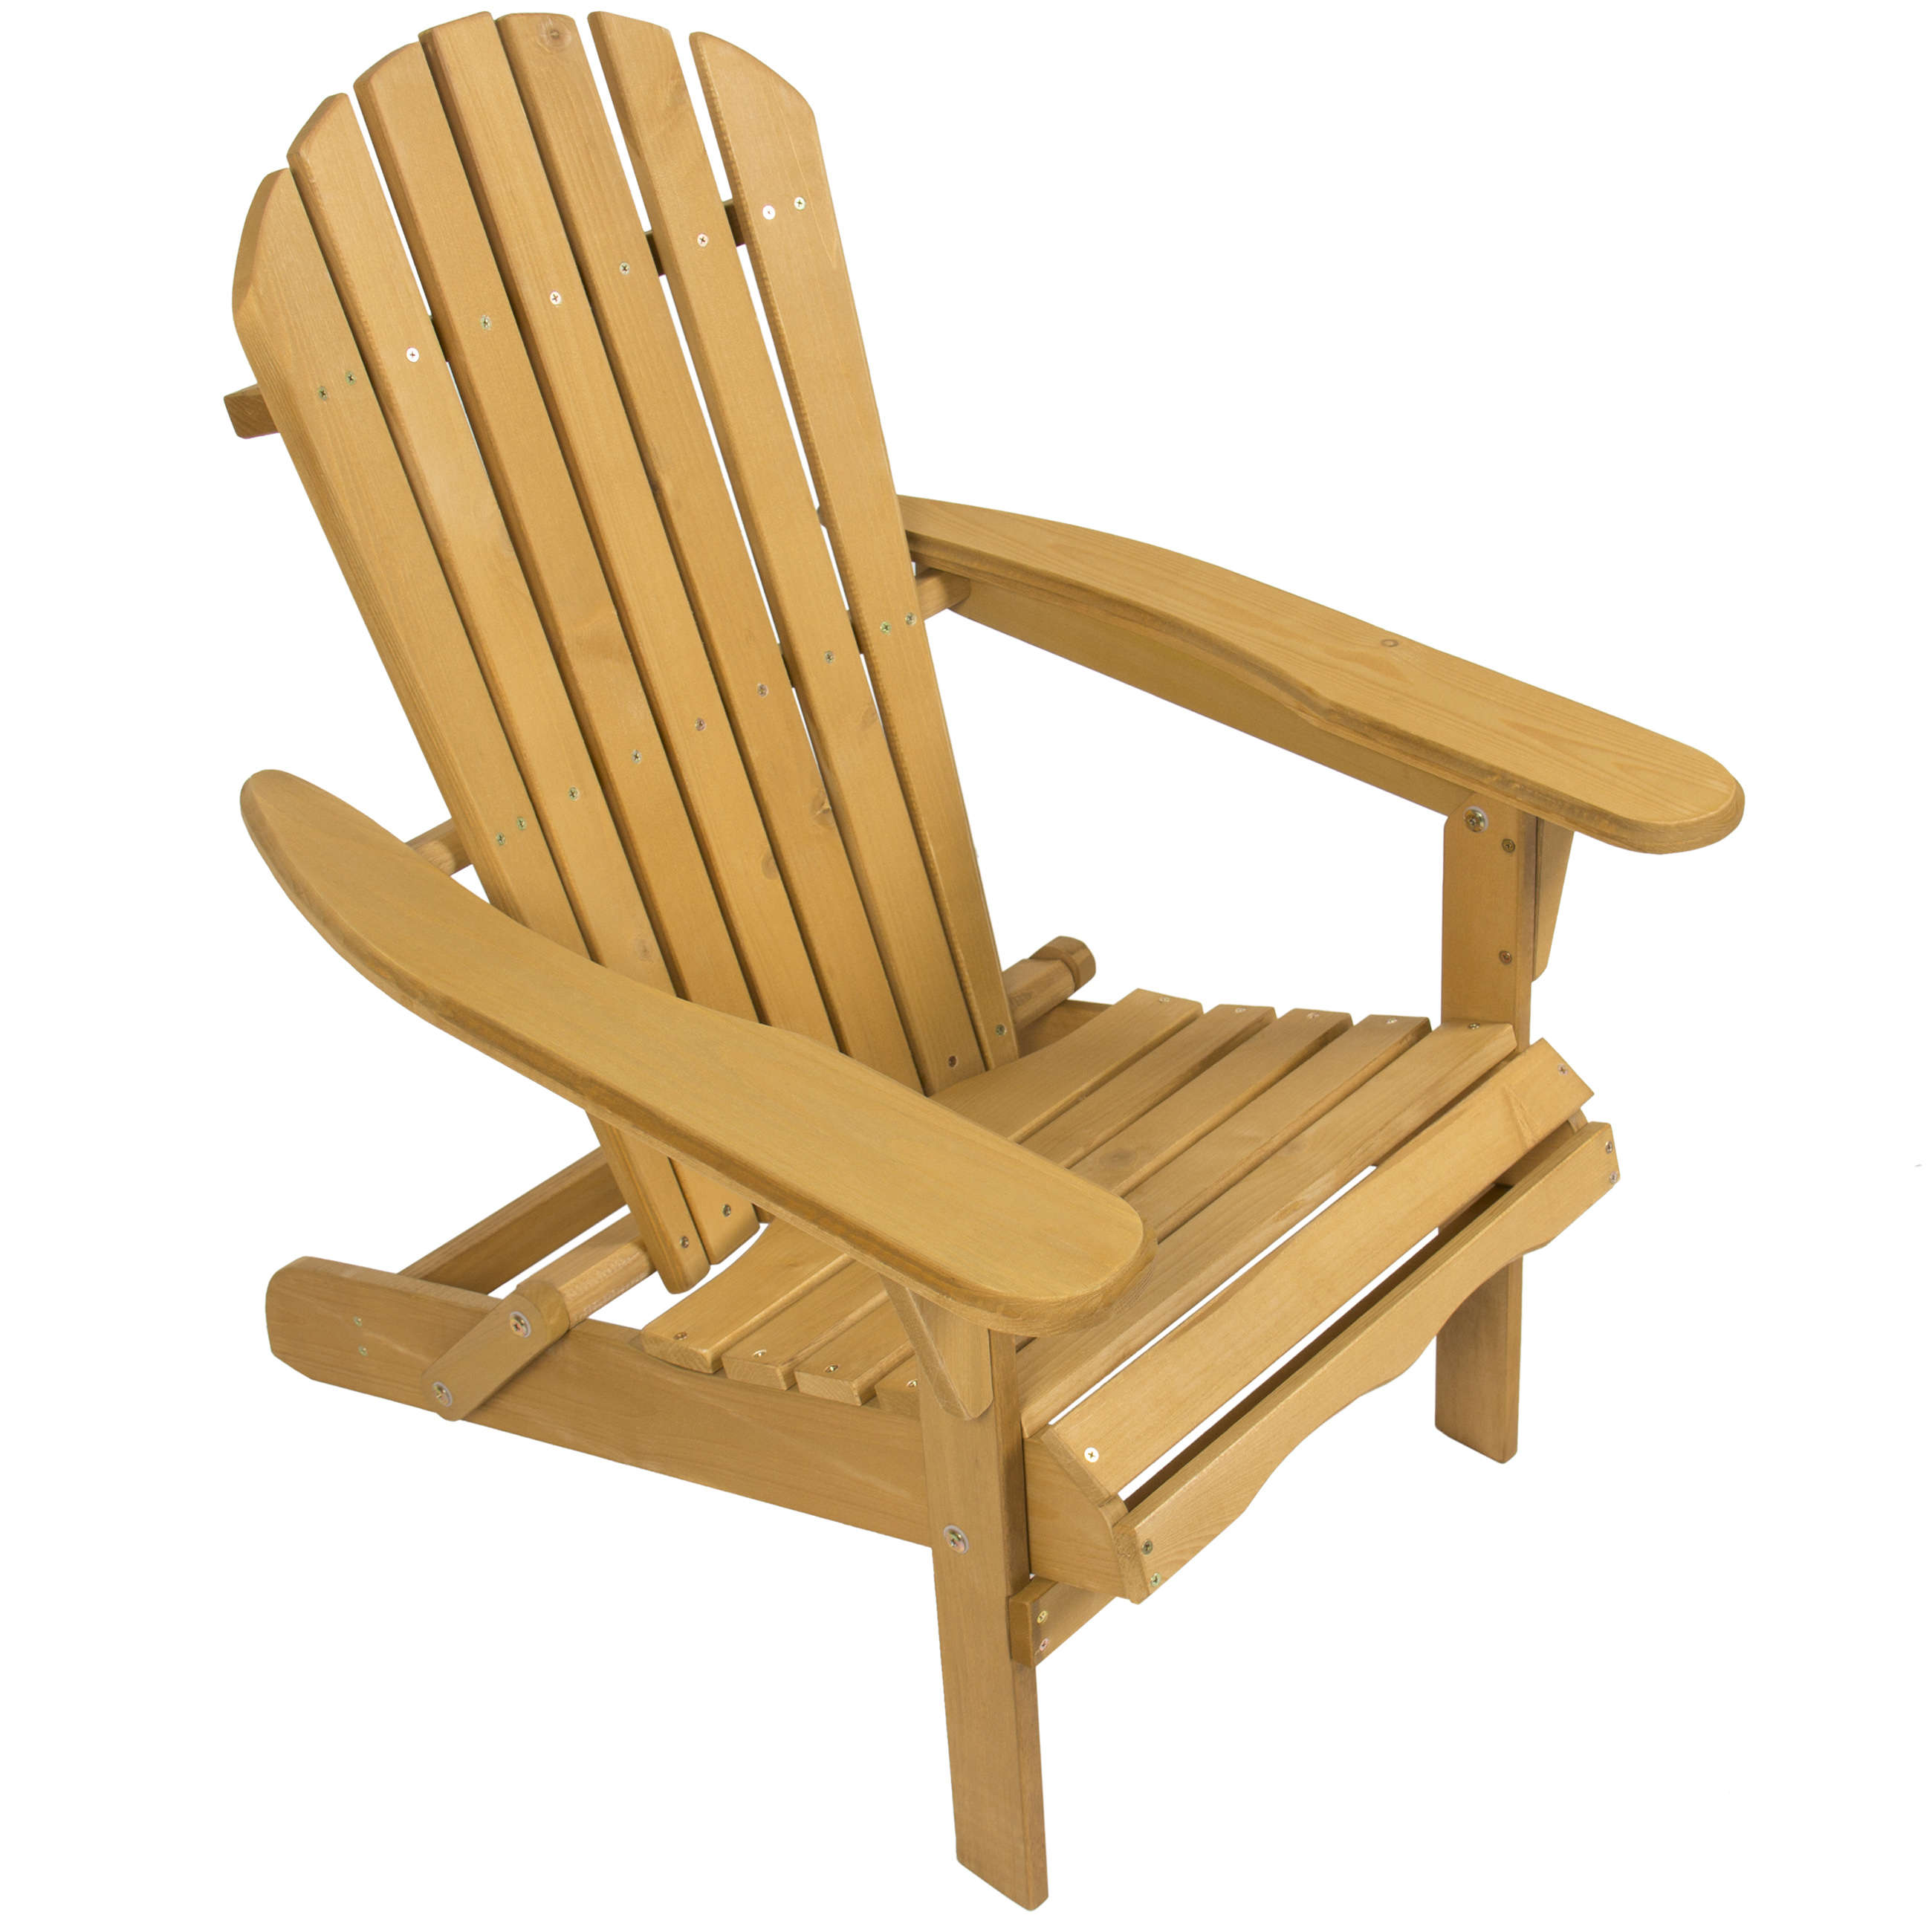 Outdoor Wooden Chairs best choice products outdoor wood adirondack chair foldable patio